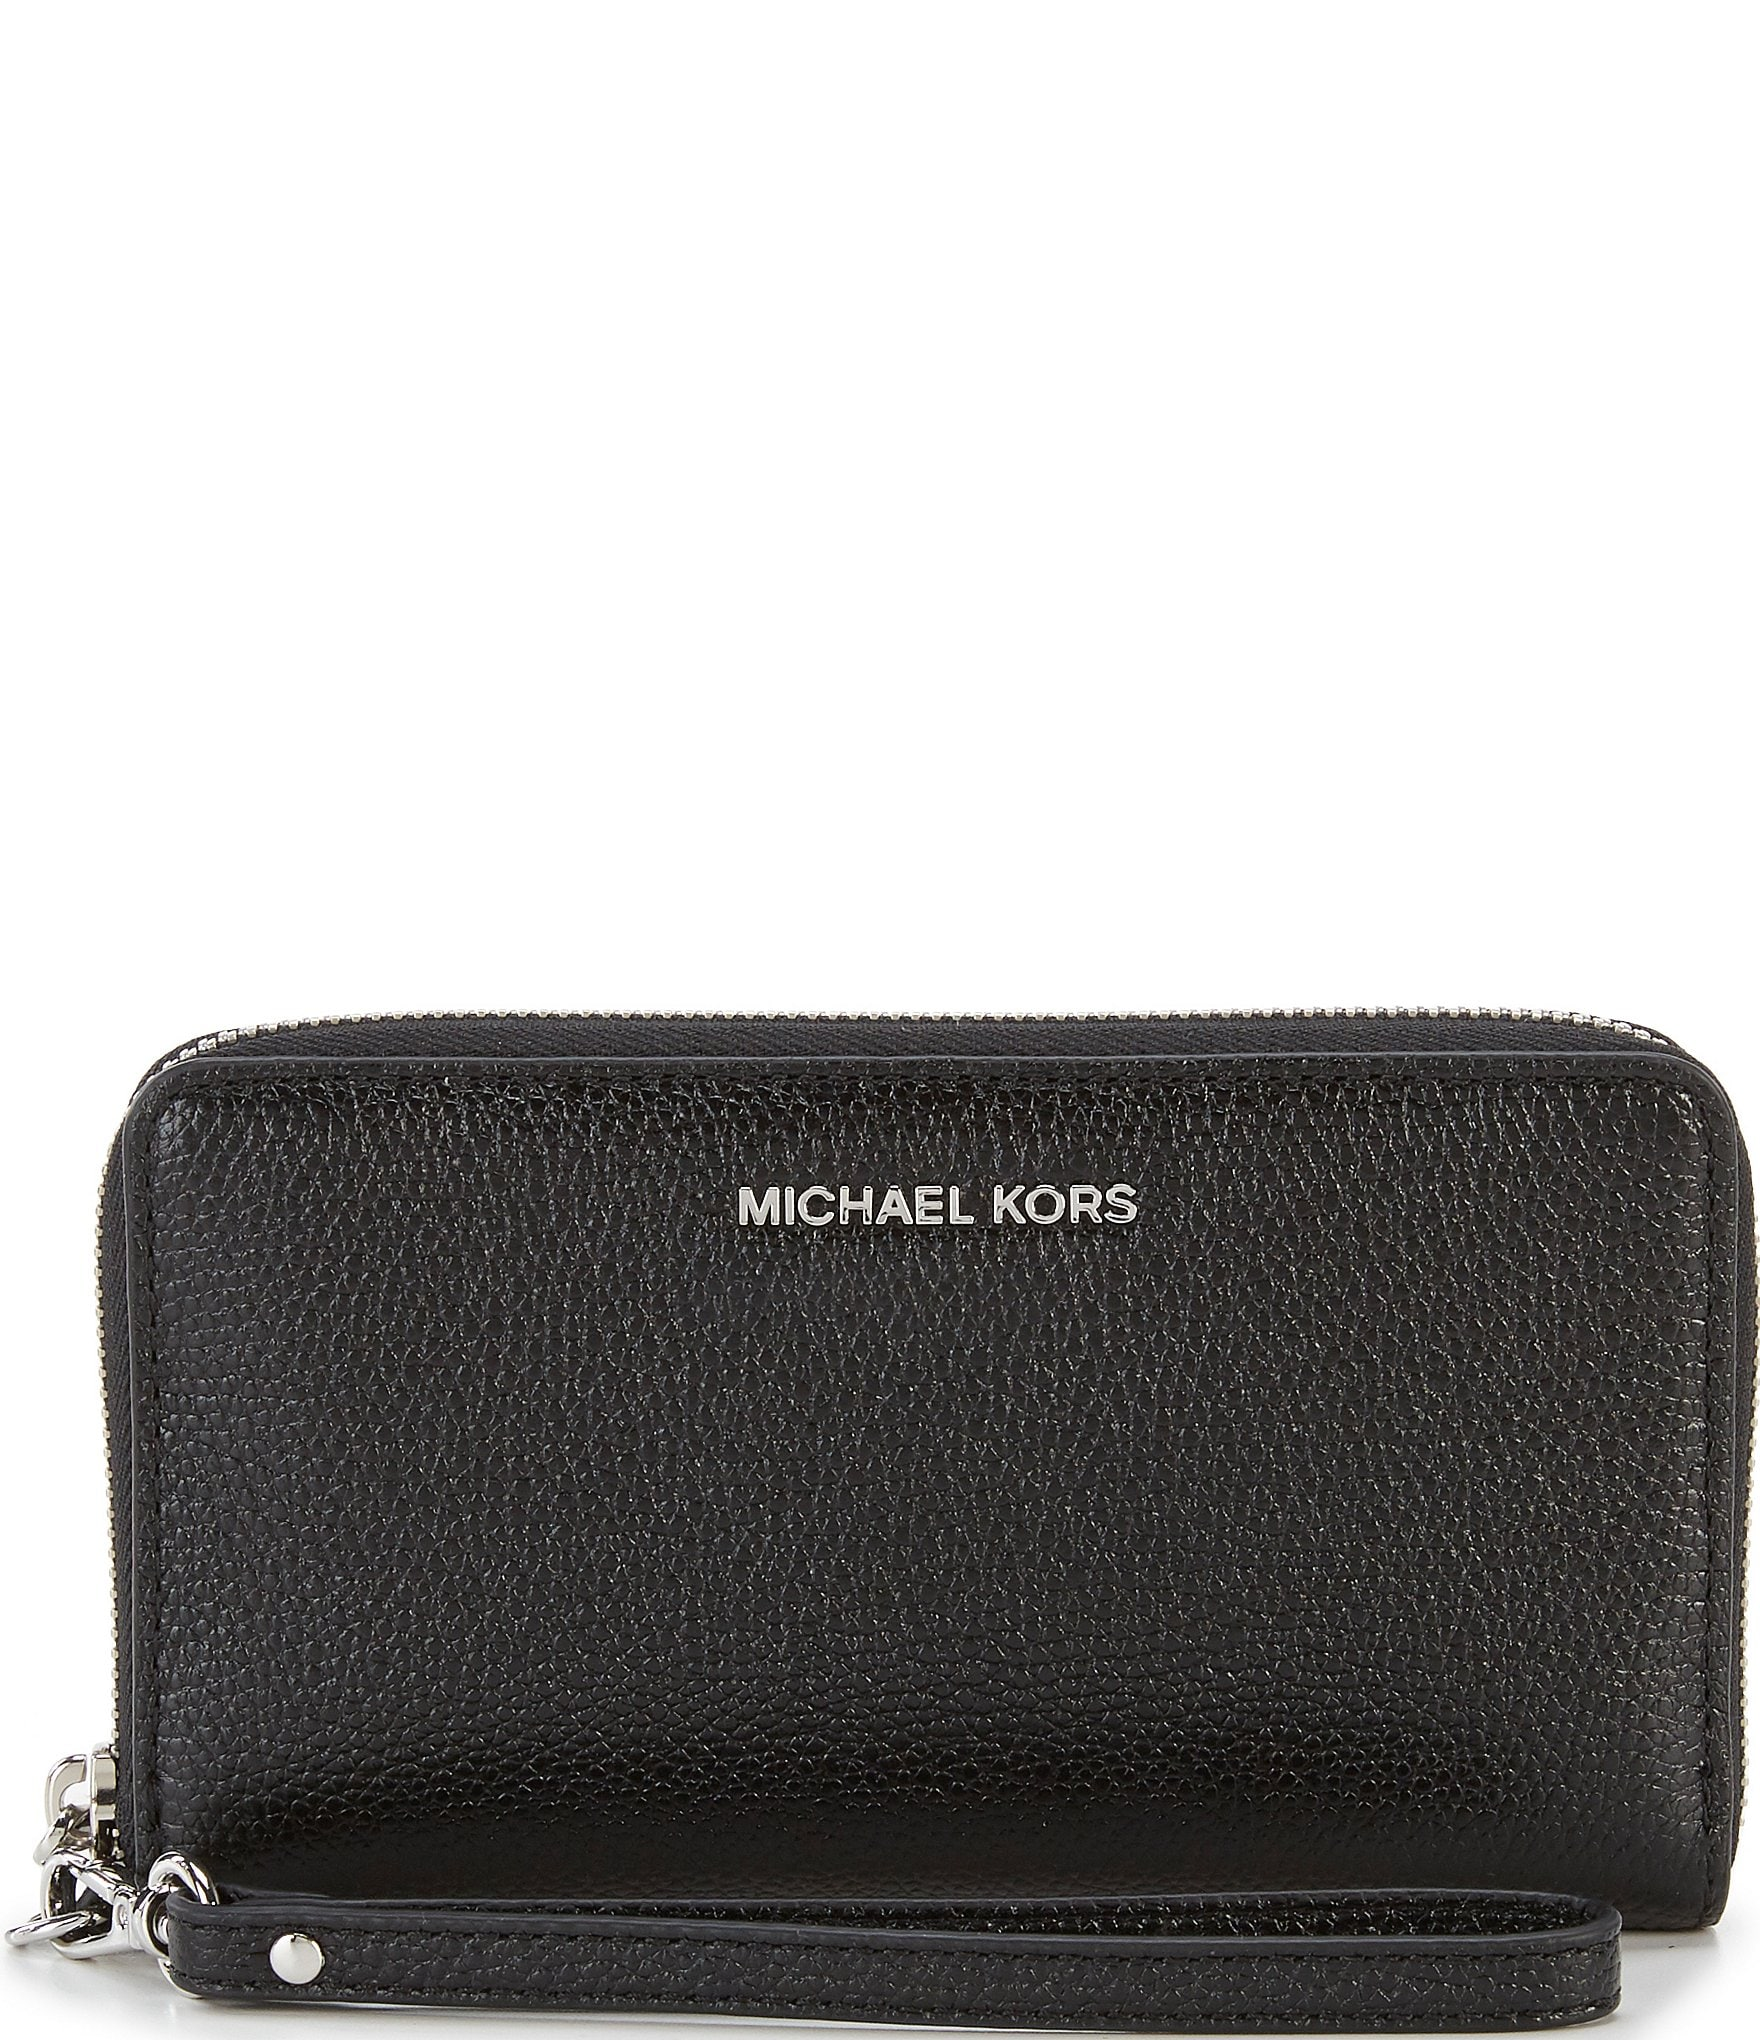 e3e2c1f4 MICHAEL Michael Kors Mercer Large Flat Multifunction Phone Wallet |  Dillard's